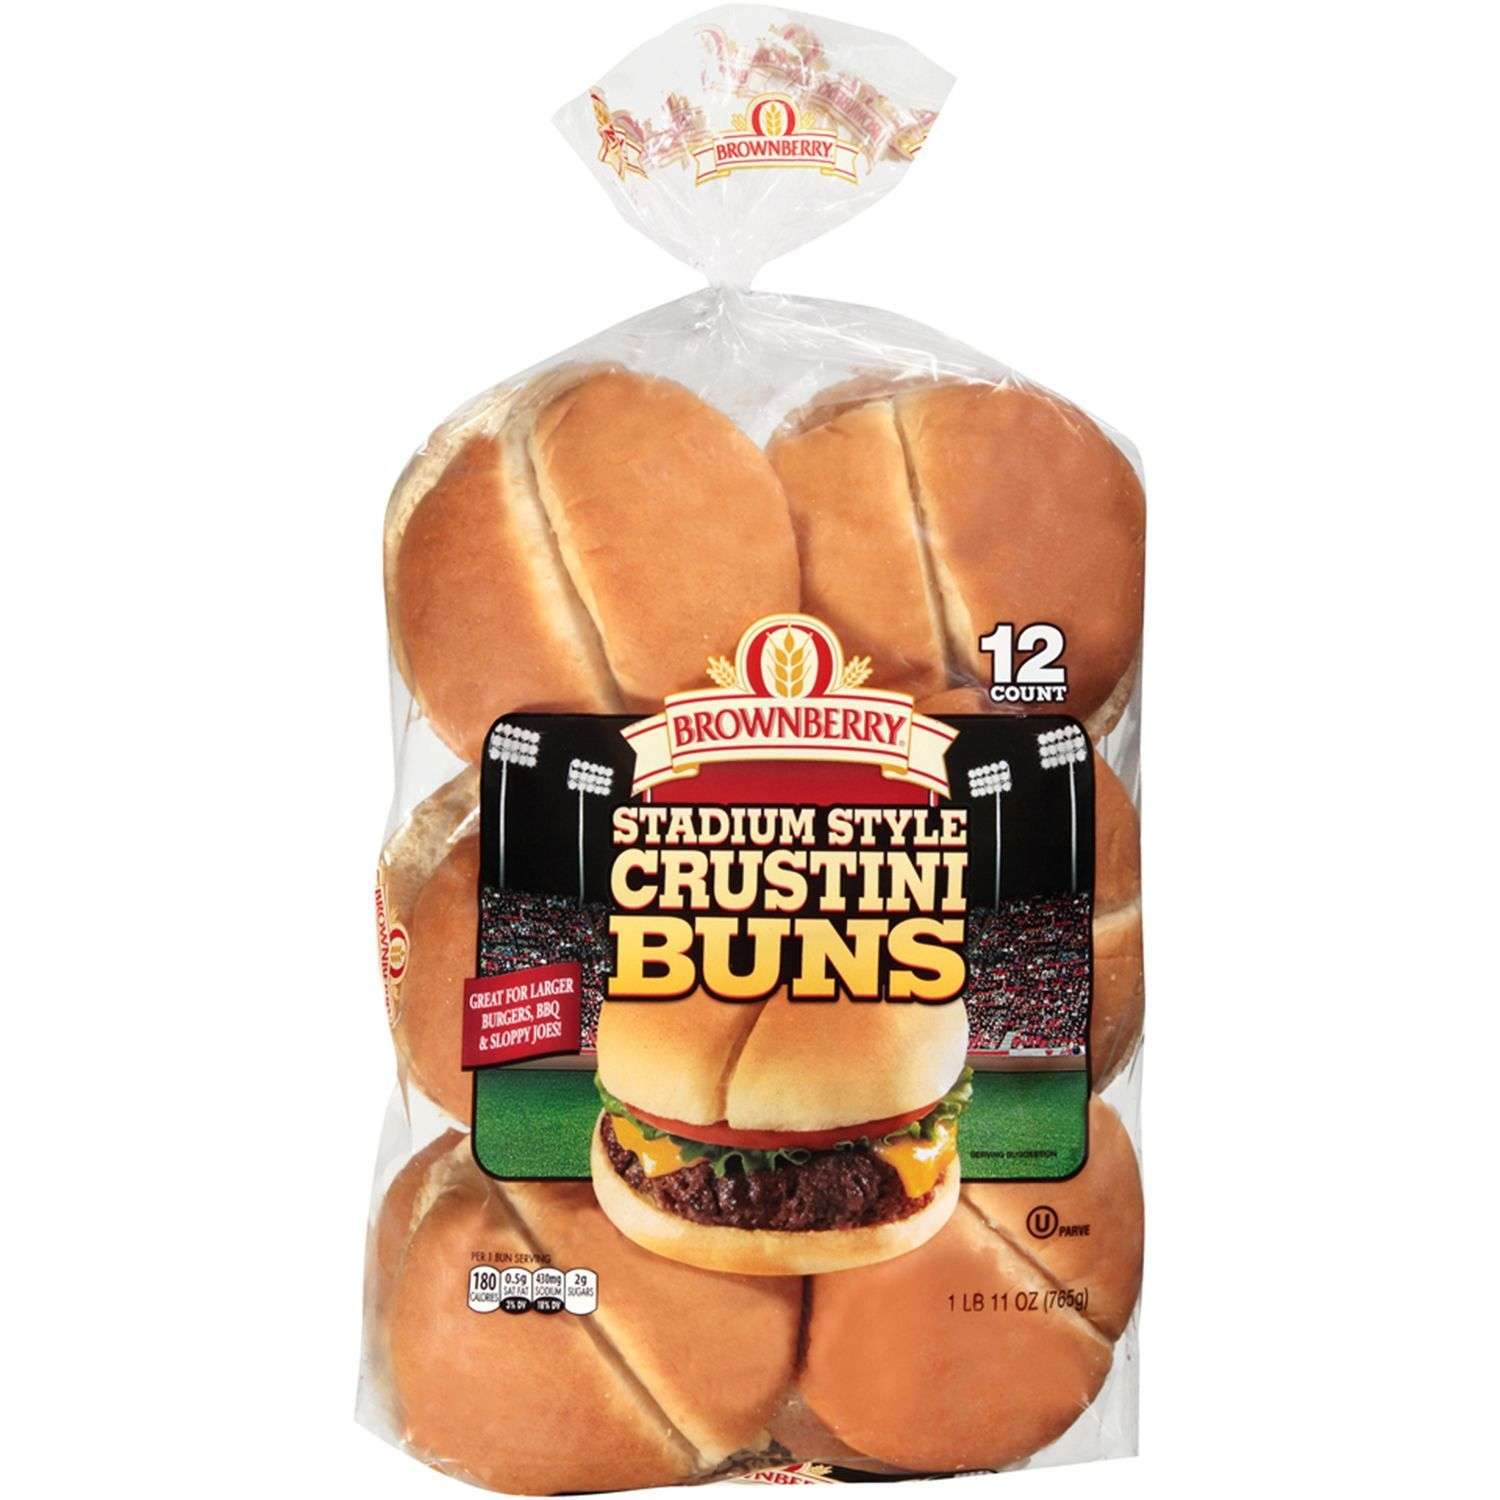 Hot Dog Buns Bread Packaging Crustini Hot Dog Buns